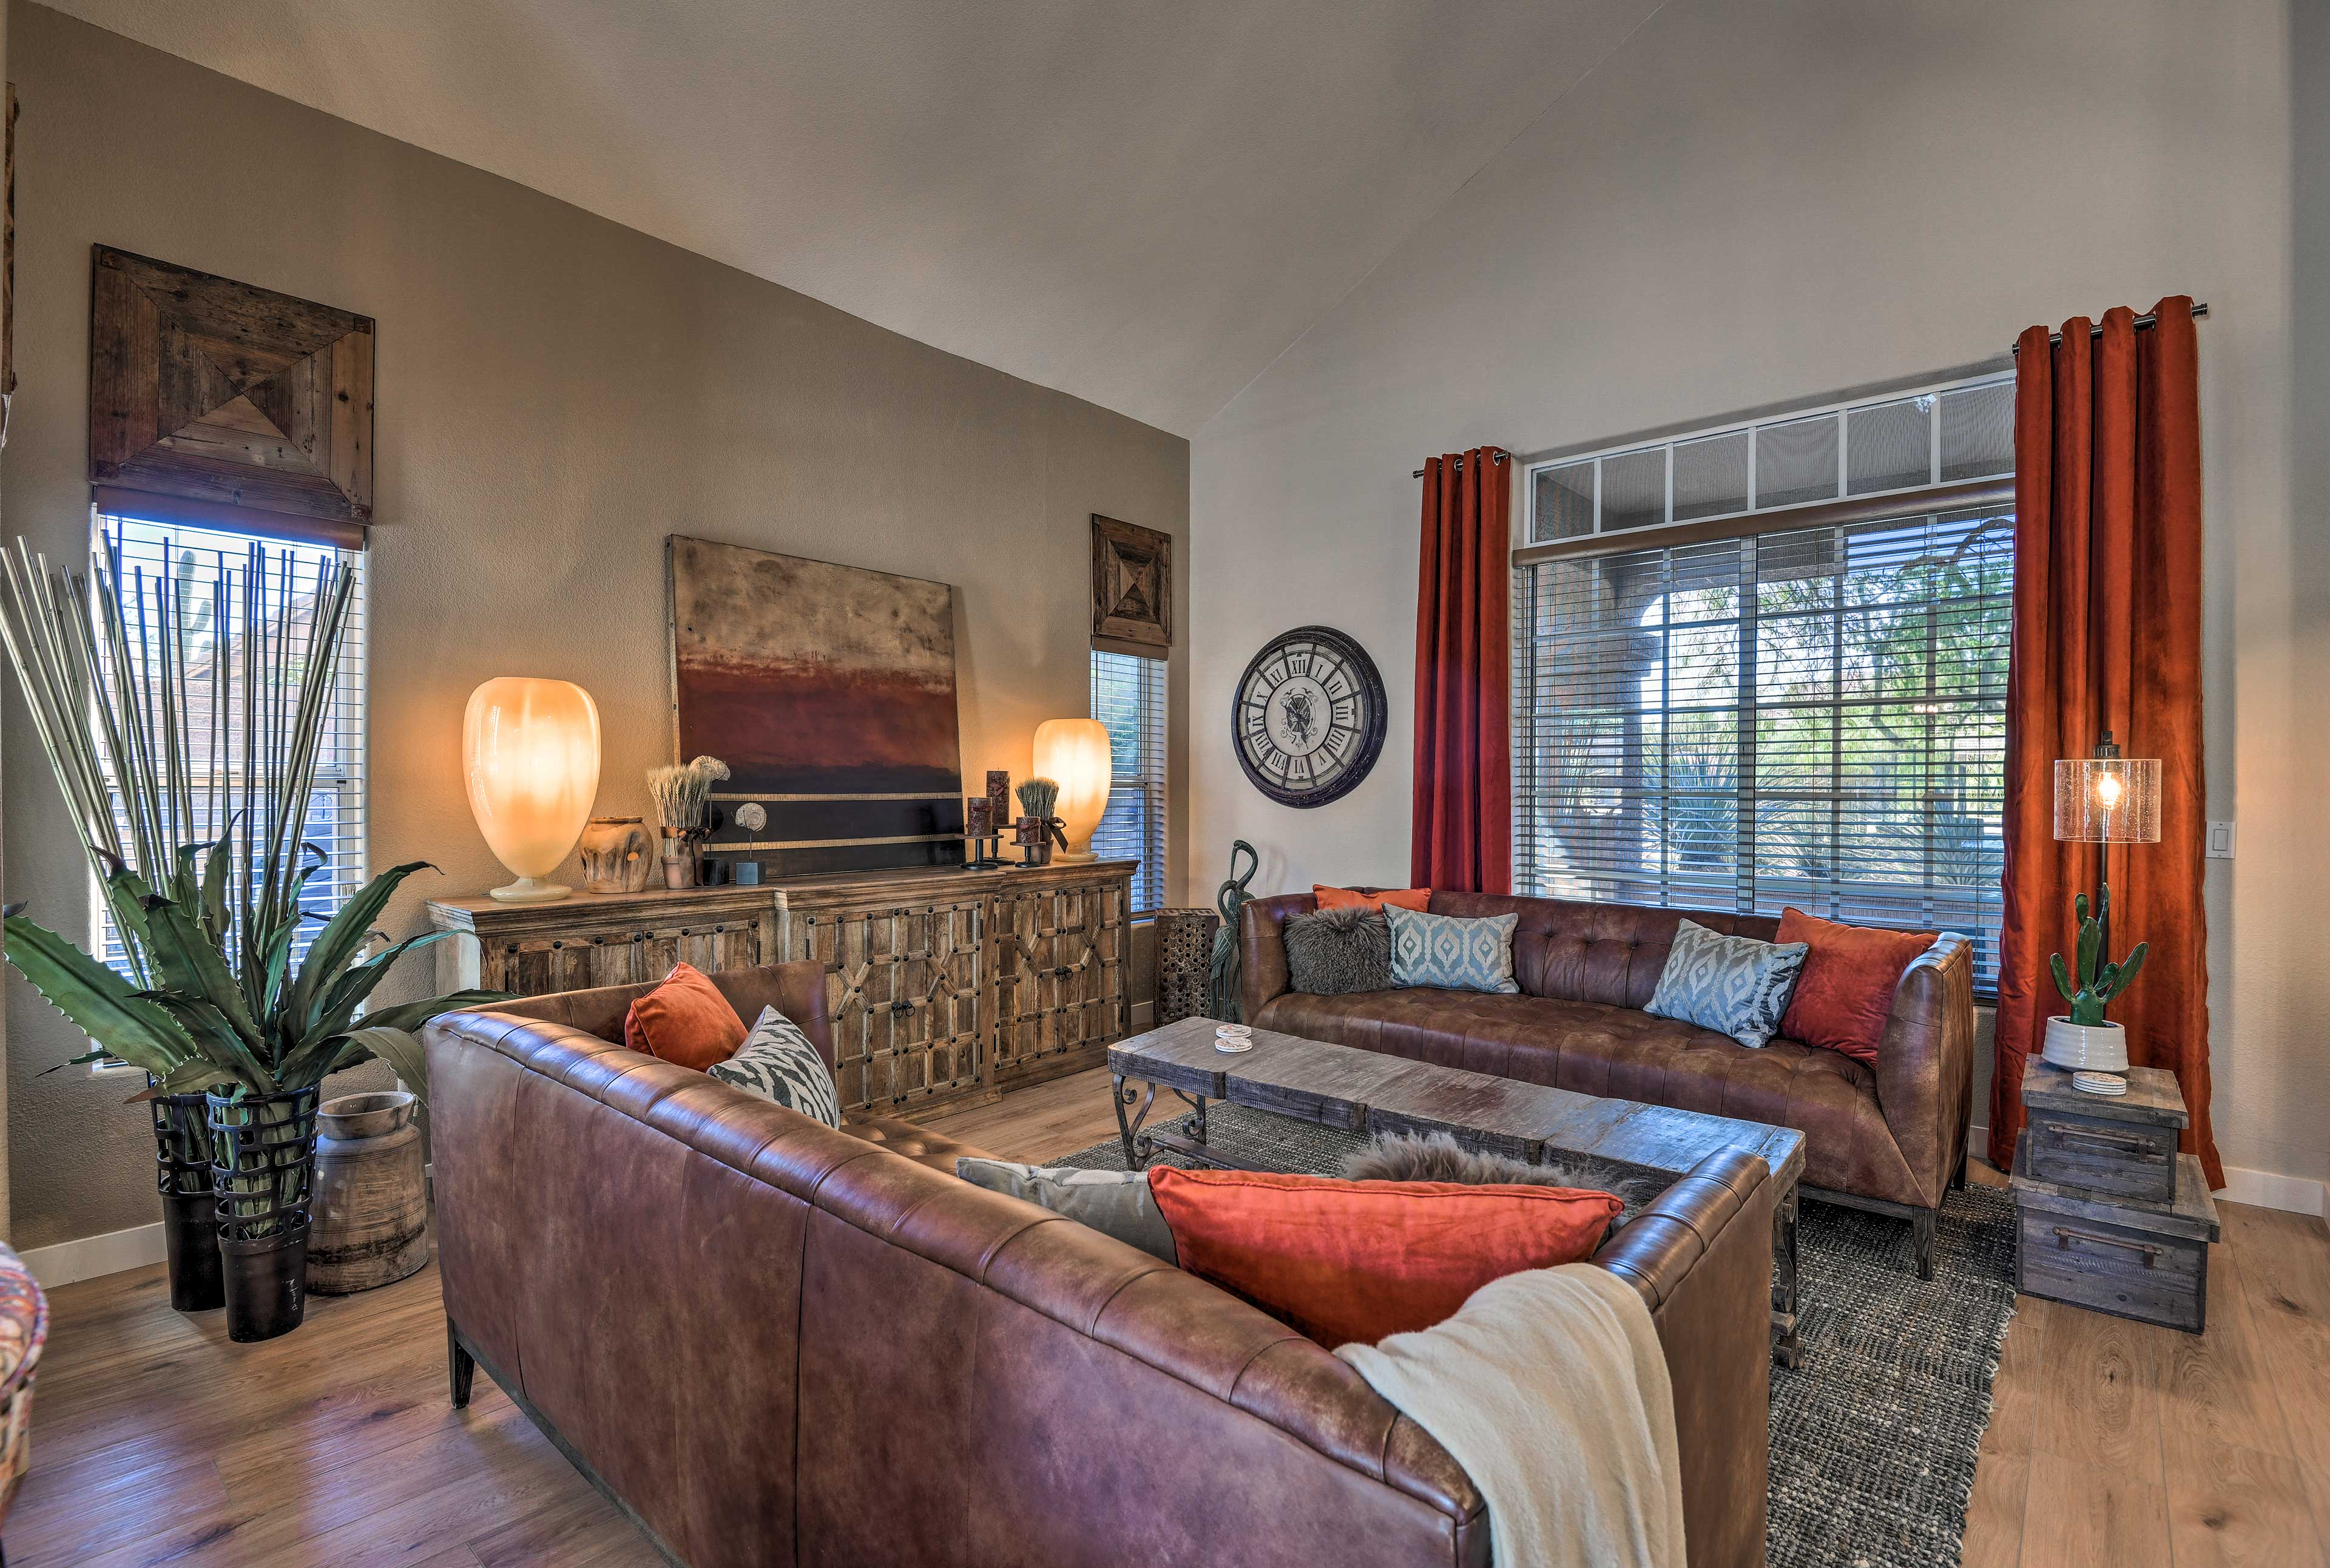 The air-conditioned interior offers over 2,800 square feet of living space!